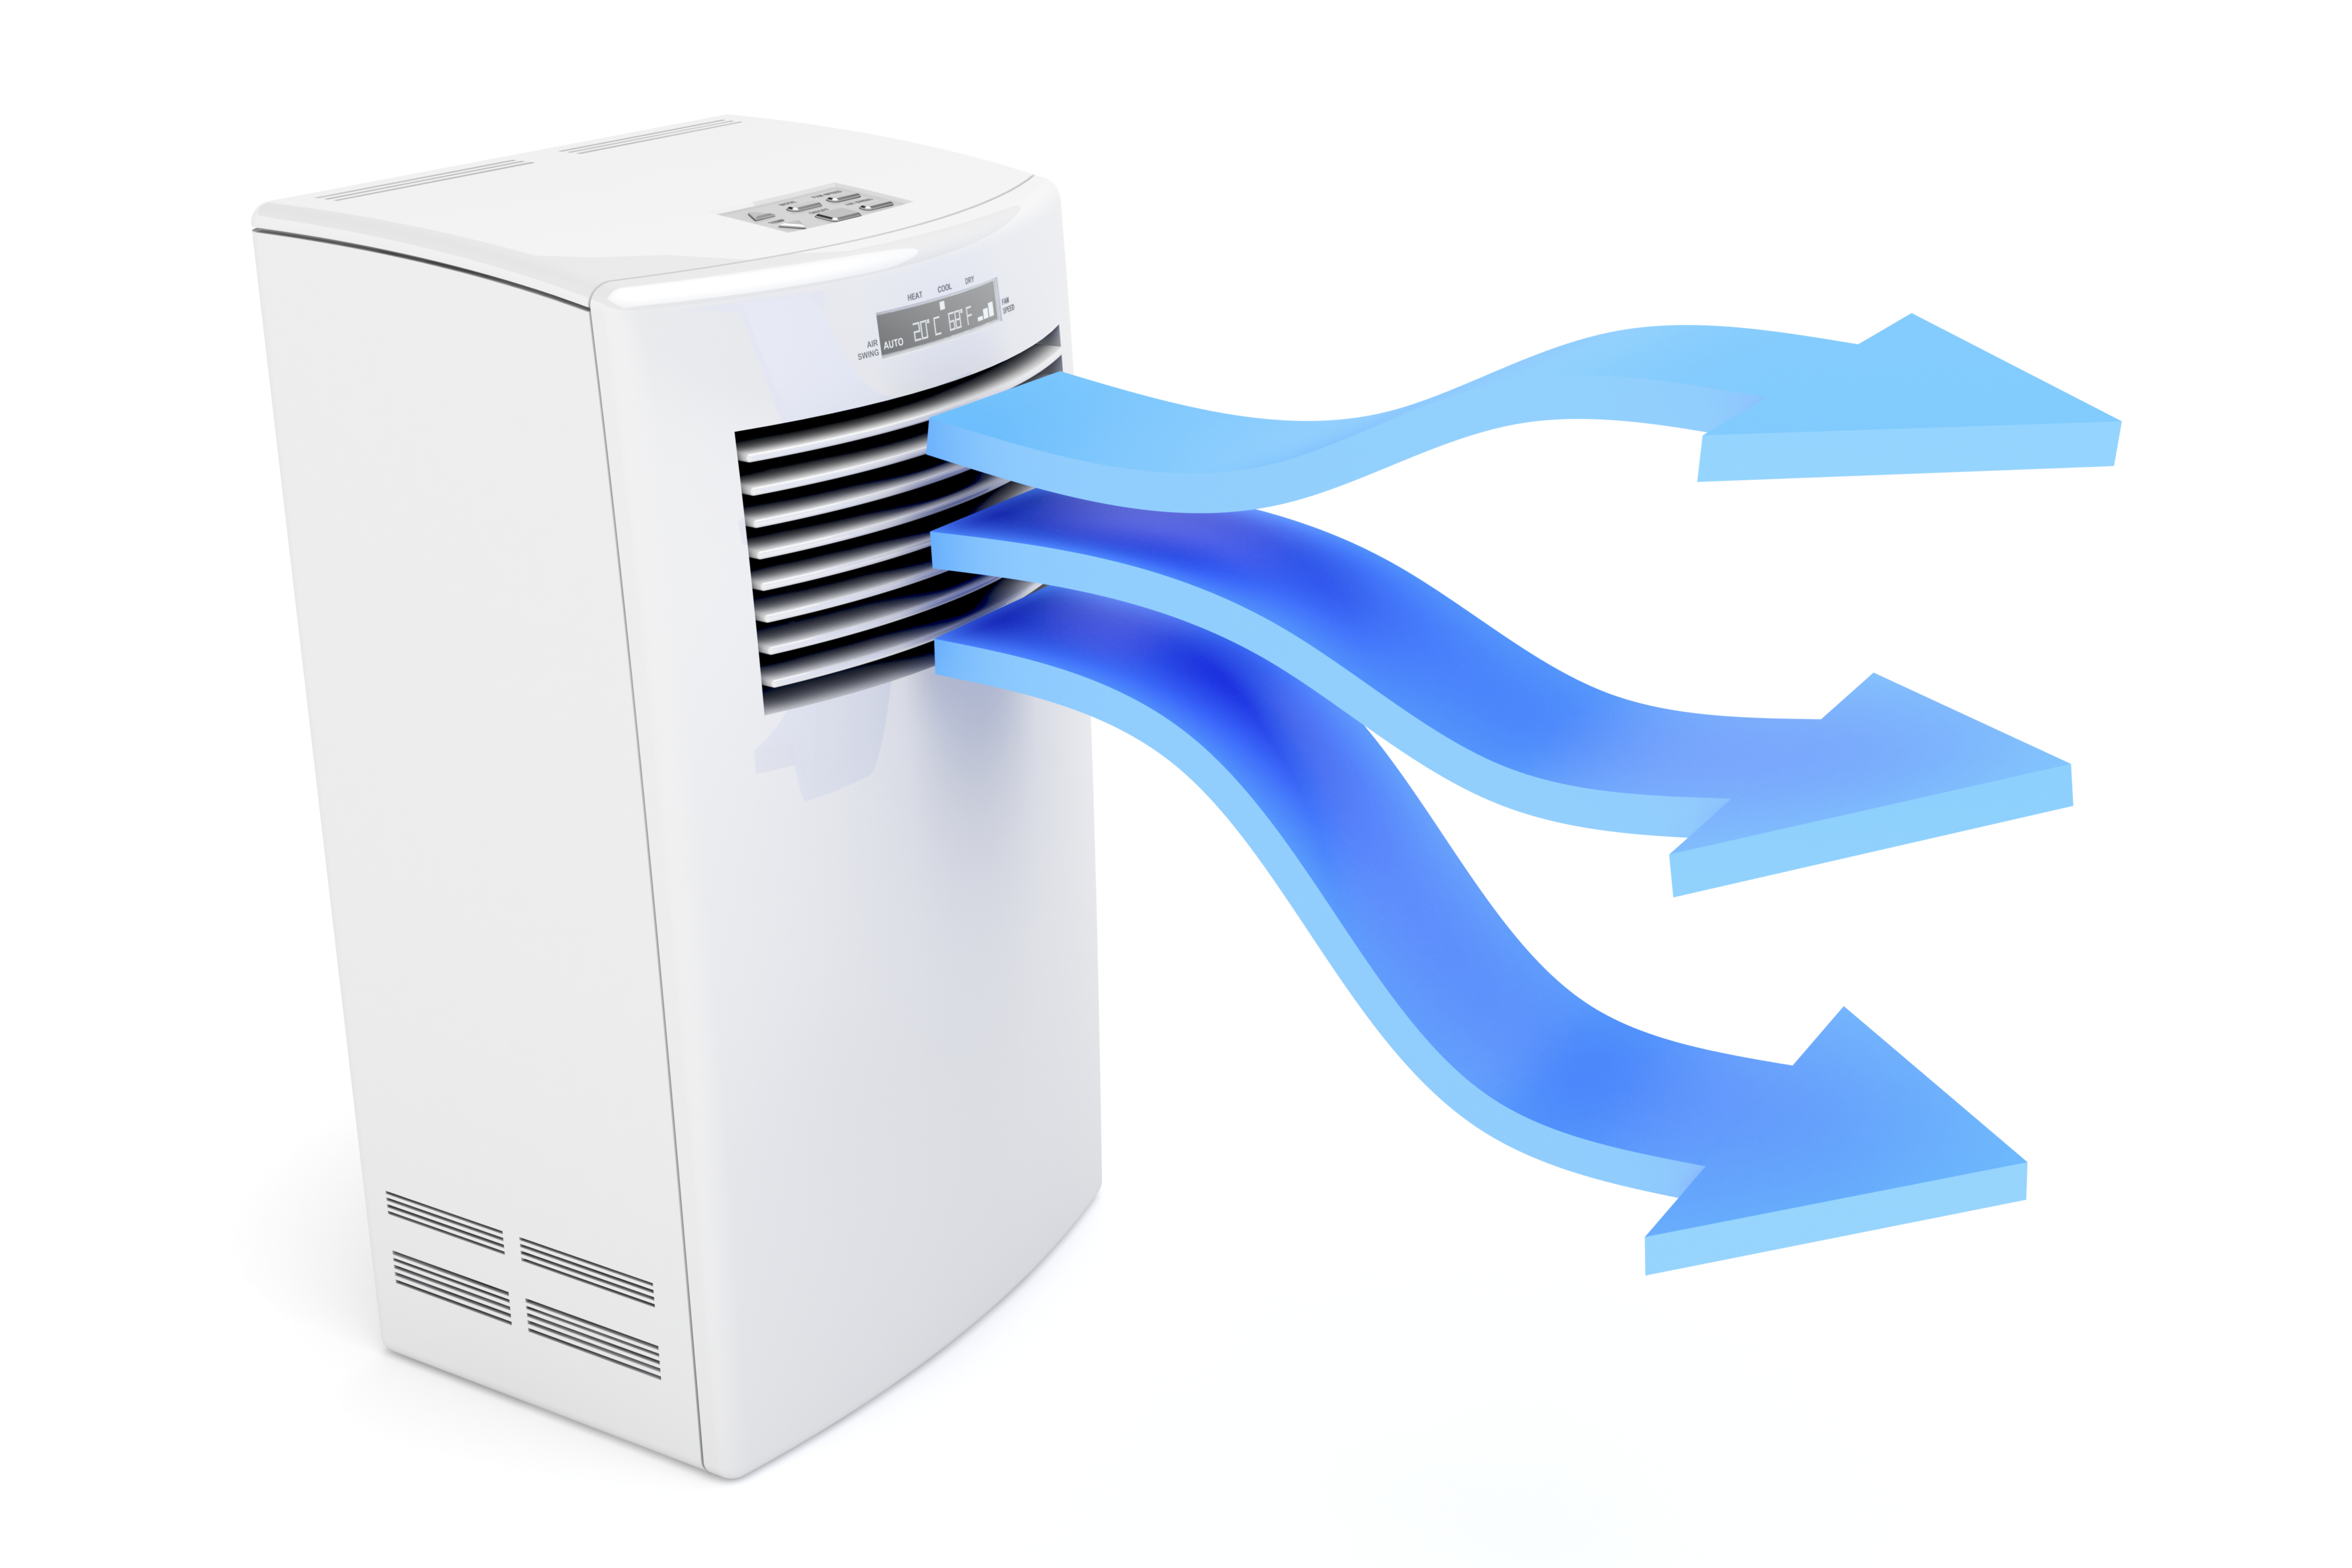 Window air conditioner versus portable air conditioner for Heat setting for home